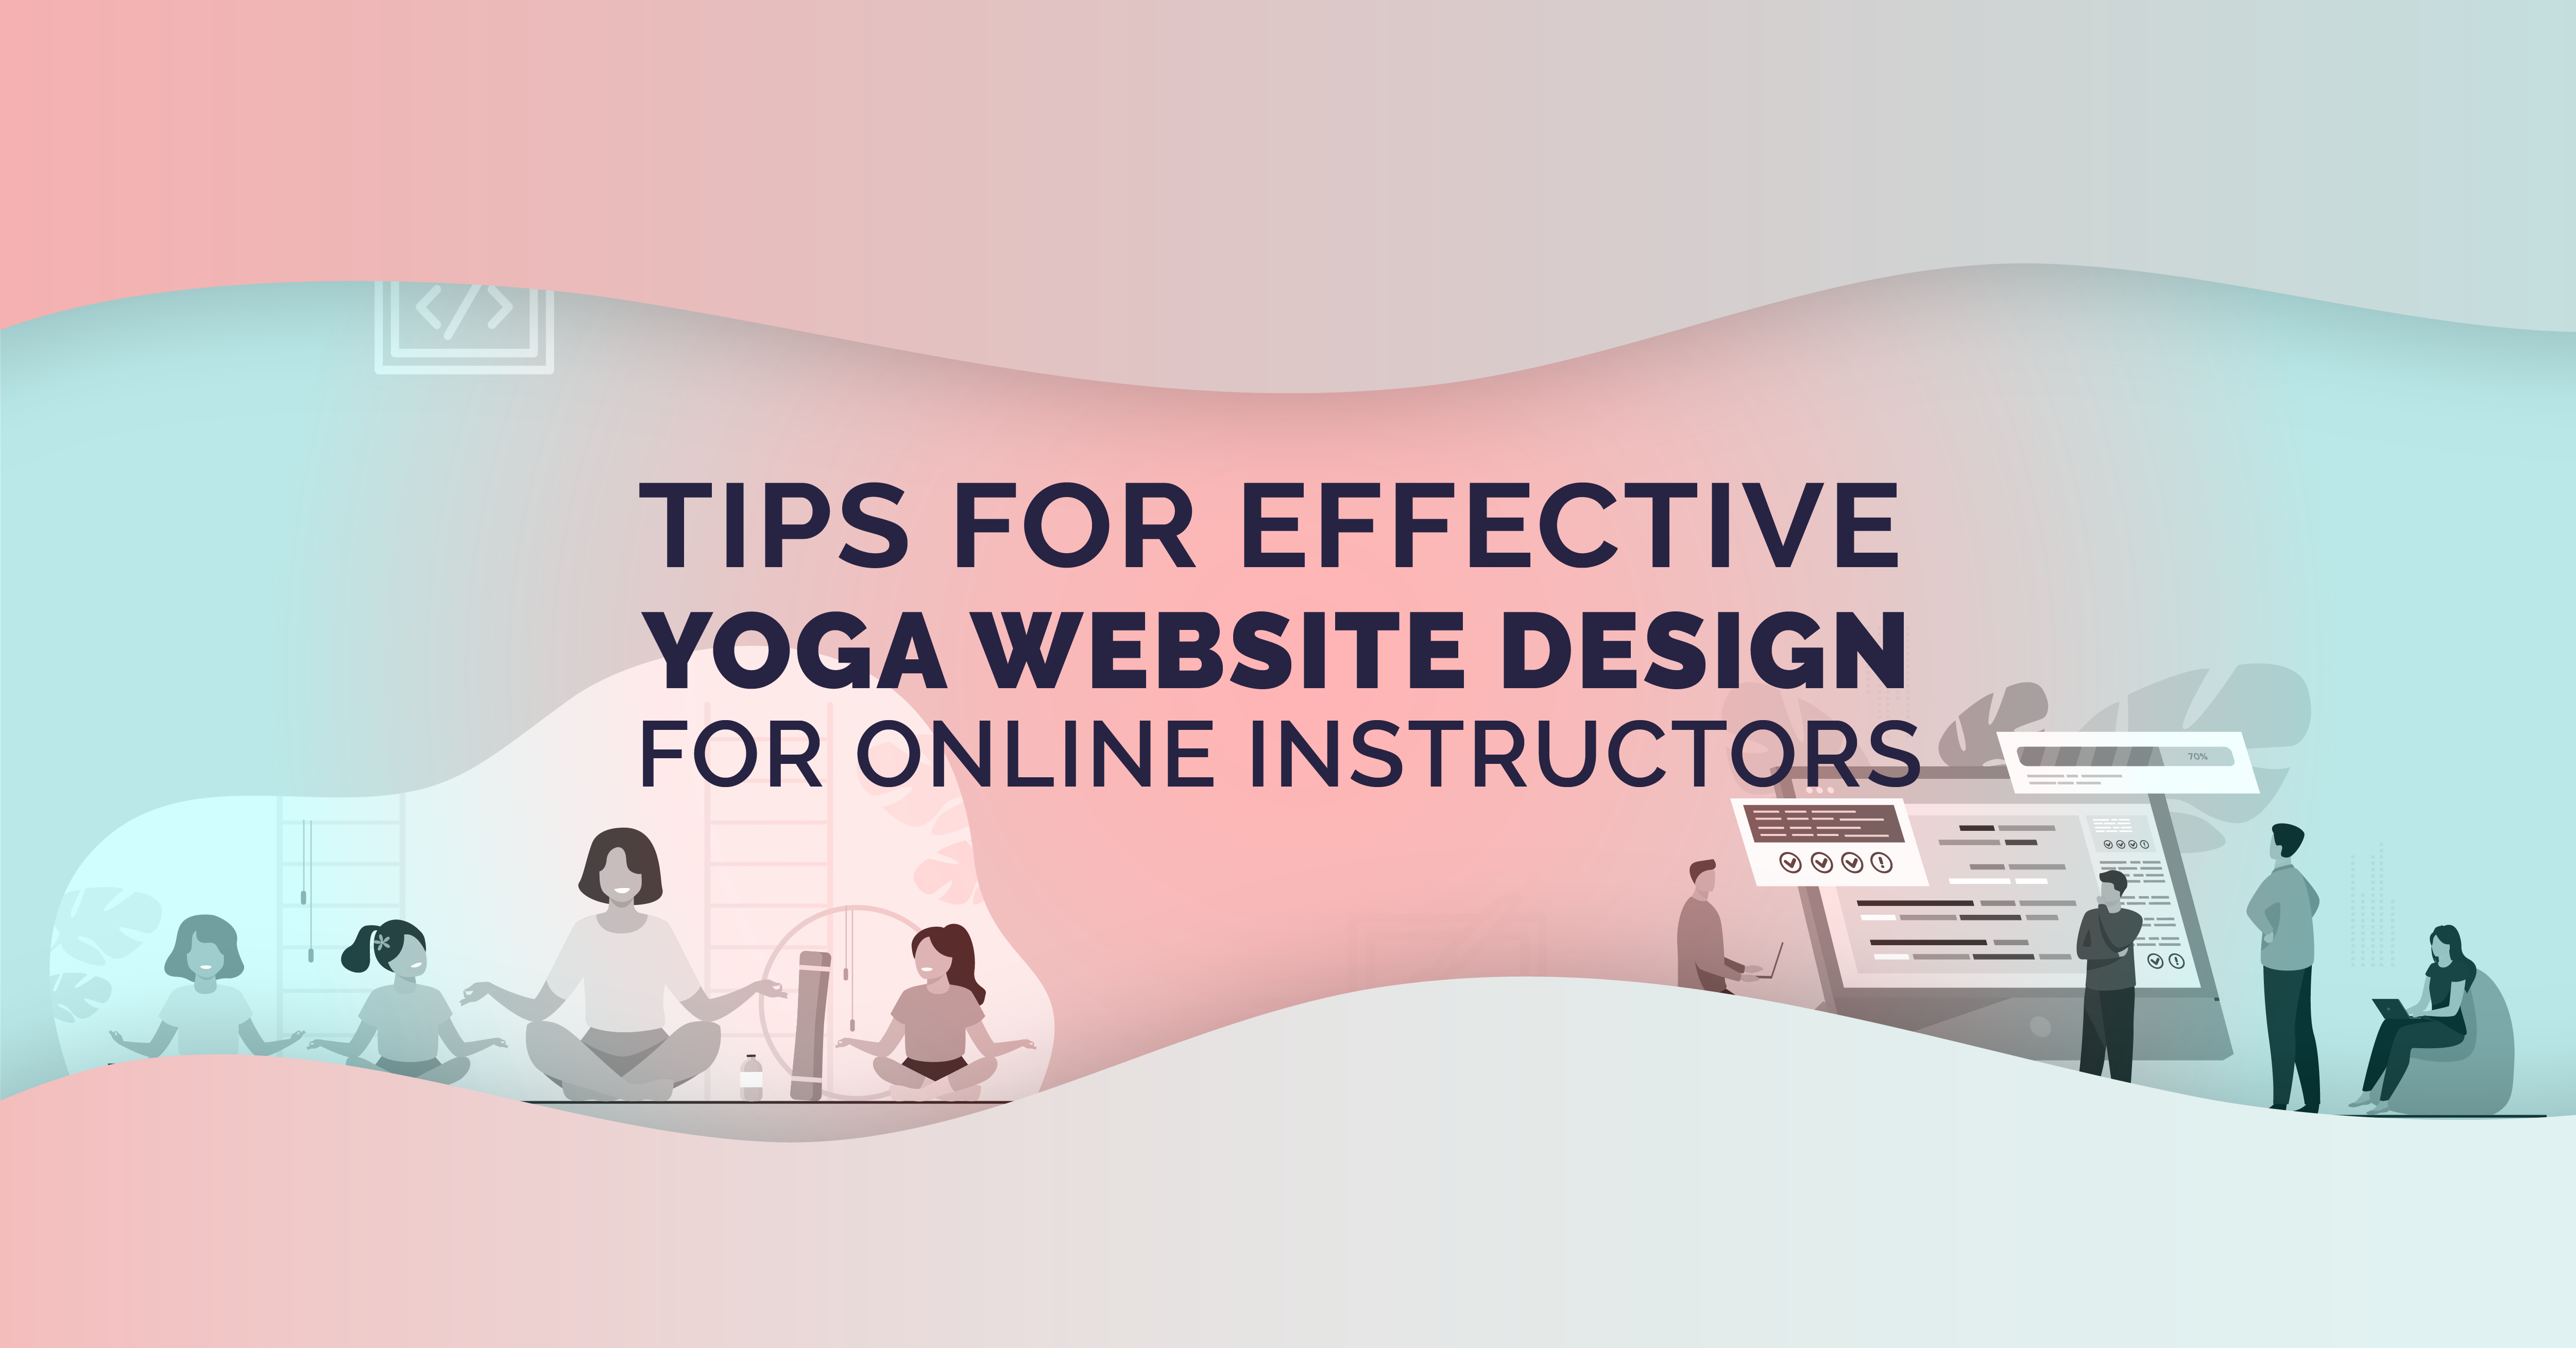 Tips for Effective Yoga Website Design for Online Instructors